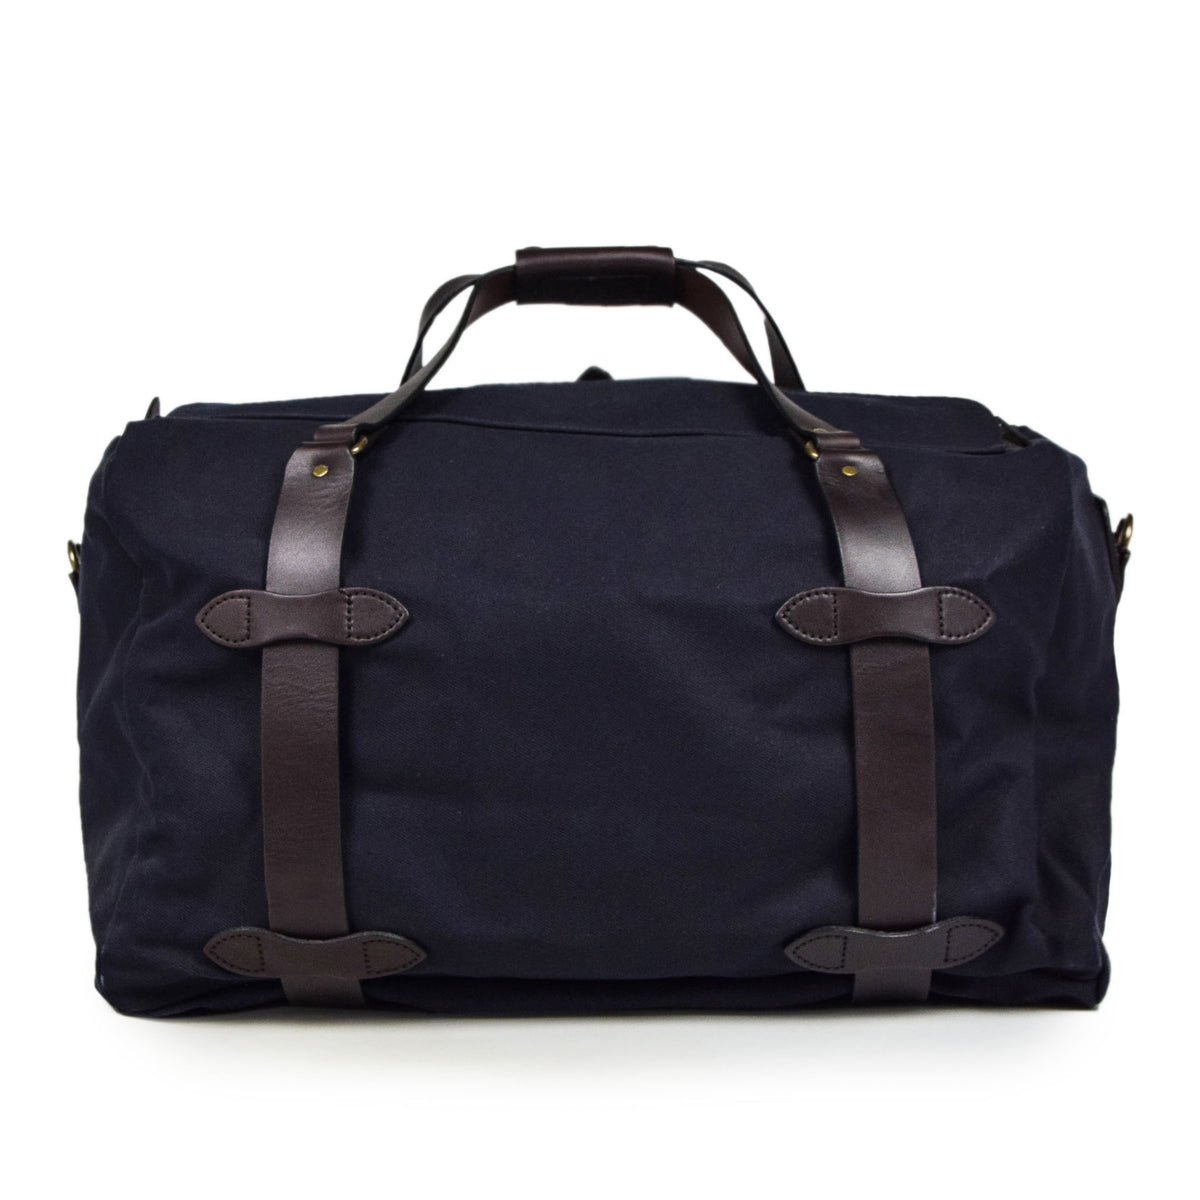 Filson Rugged Twill Carry-On Duffle Bag Navy Back